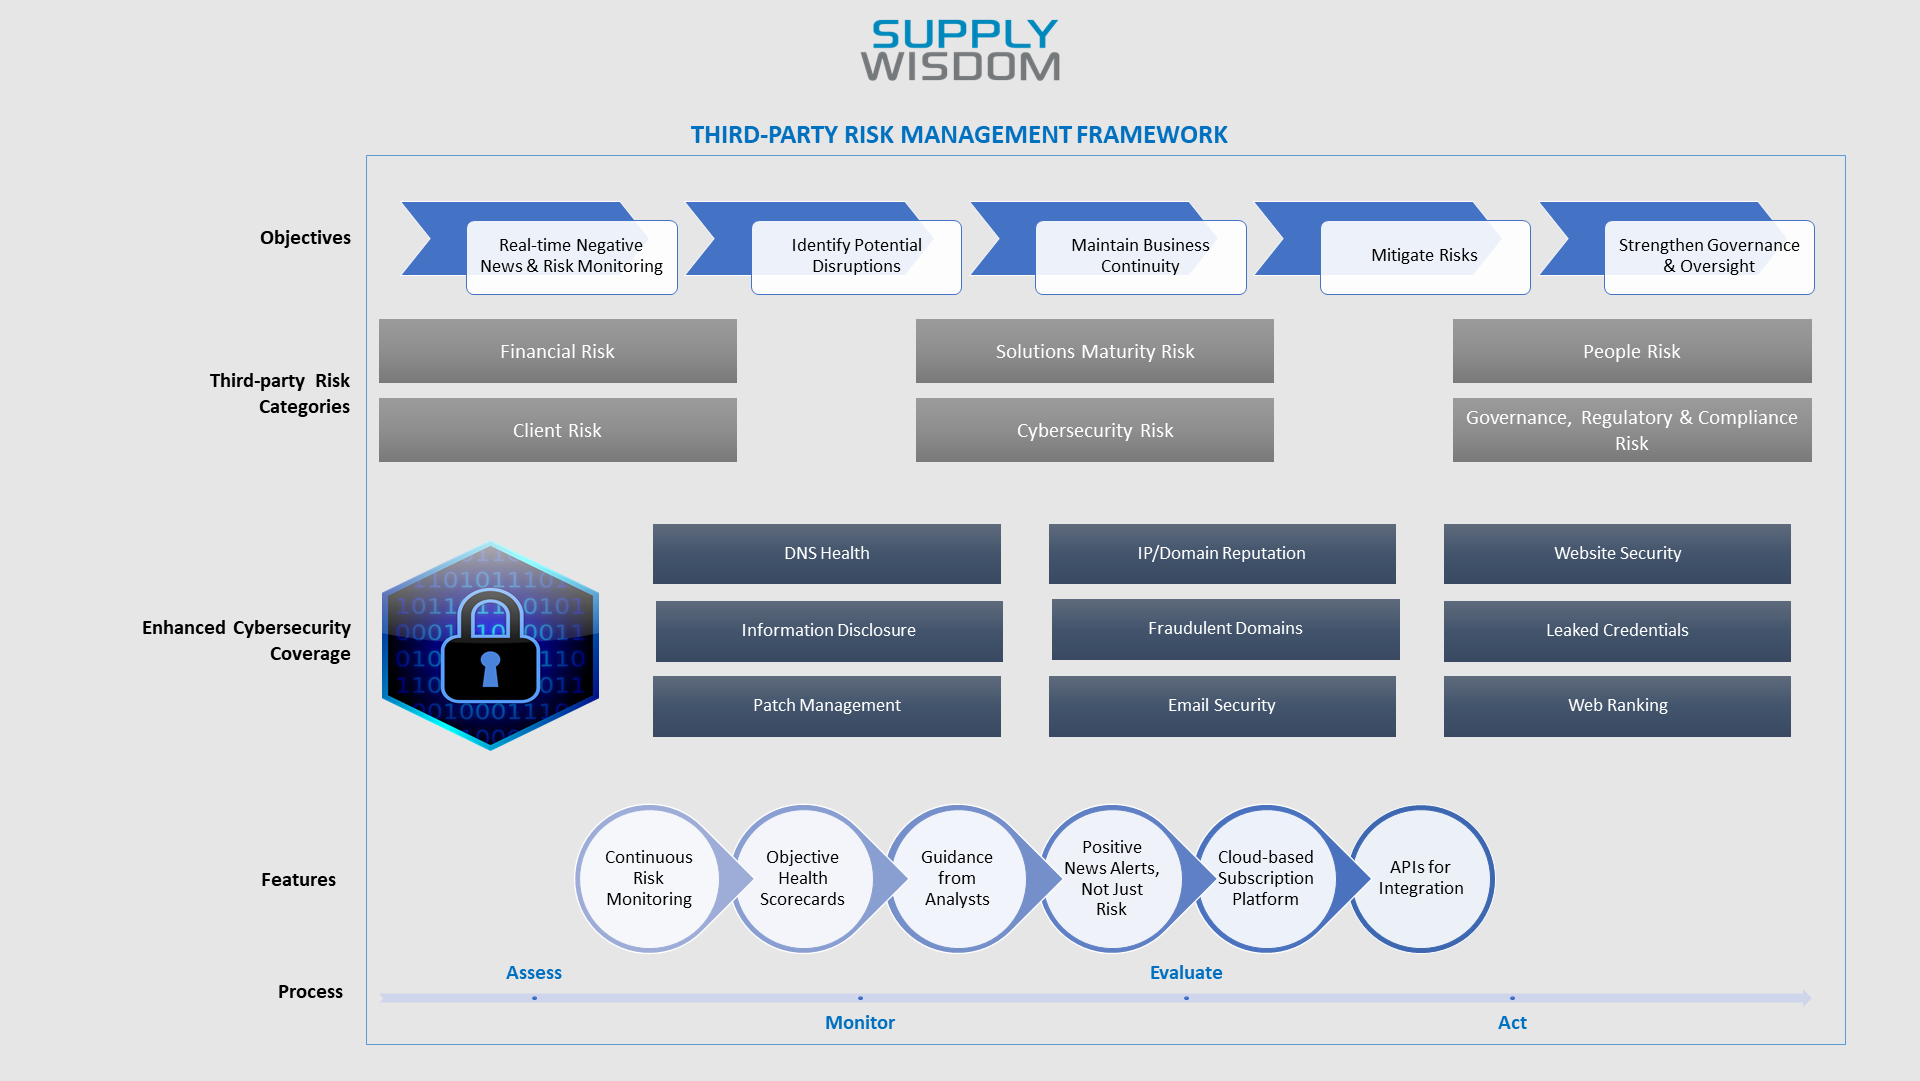 Supply Wisdom TPRM framework